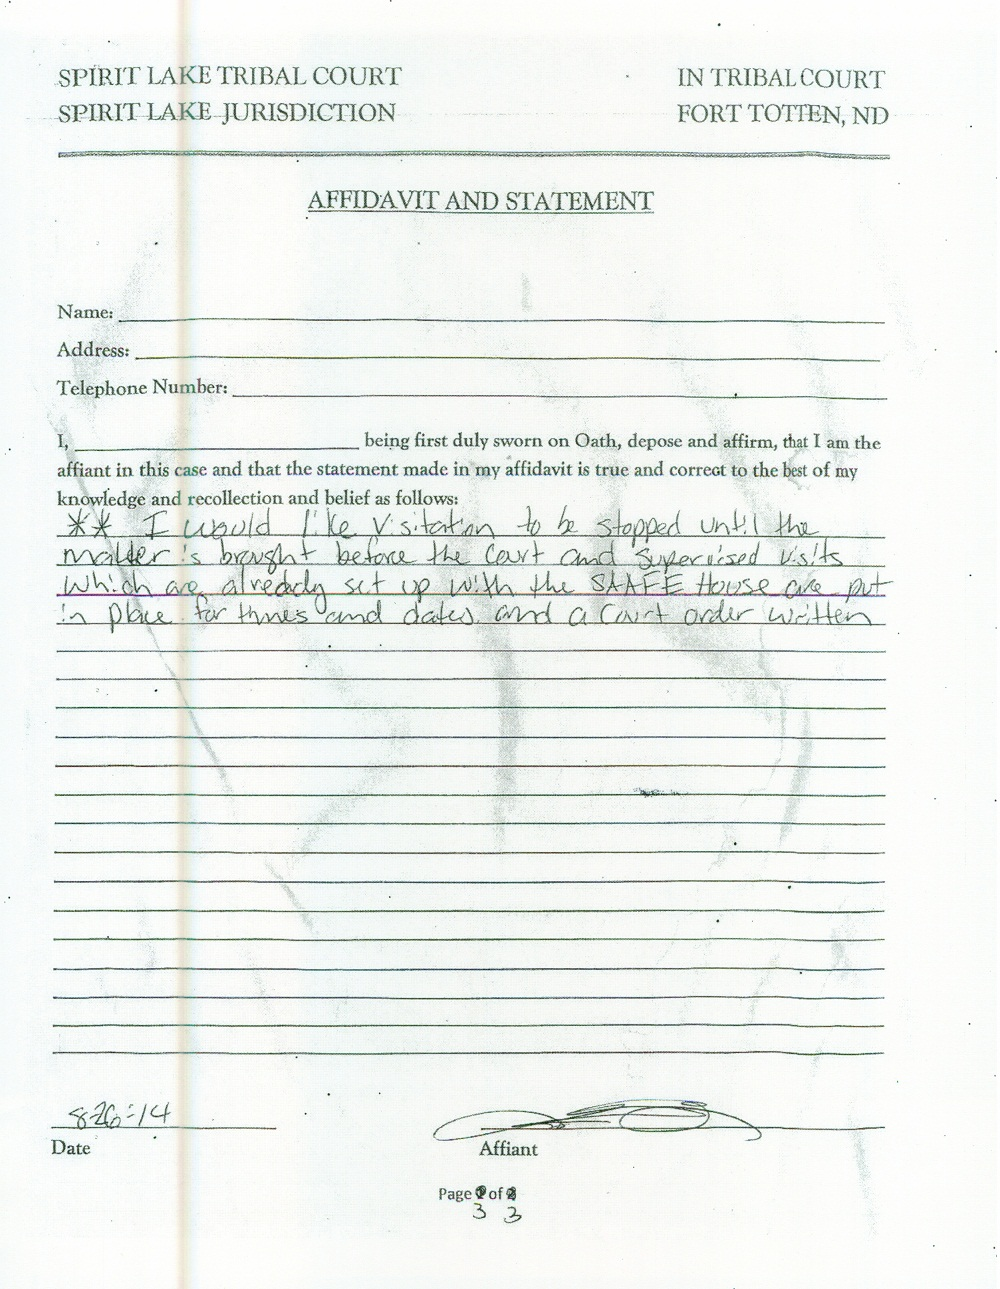 Bundy's August 27 Statement - page 3 of 3